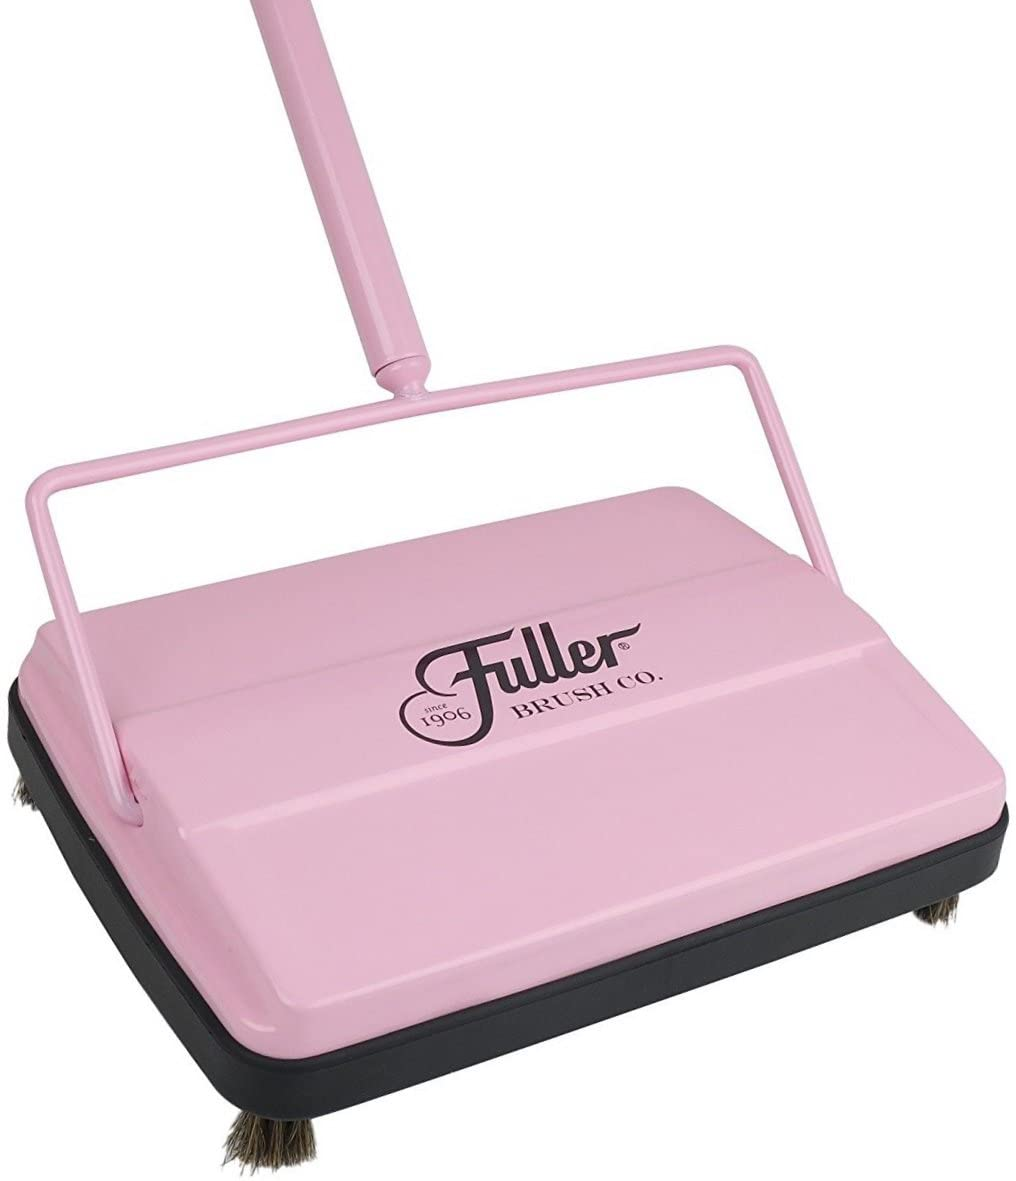 This 115-Year-Old Brand's Retro Sweeper Is Getting Glowing Reviews from Amazon Customers